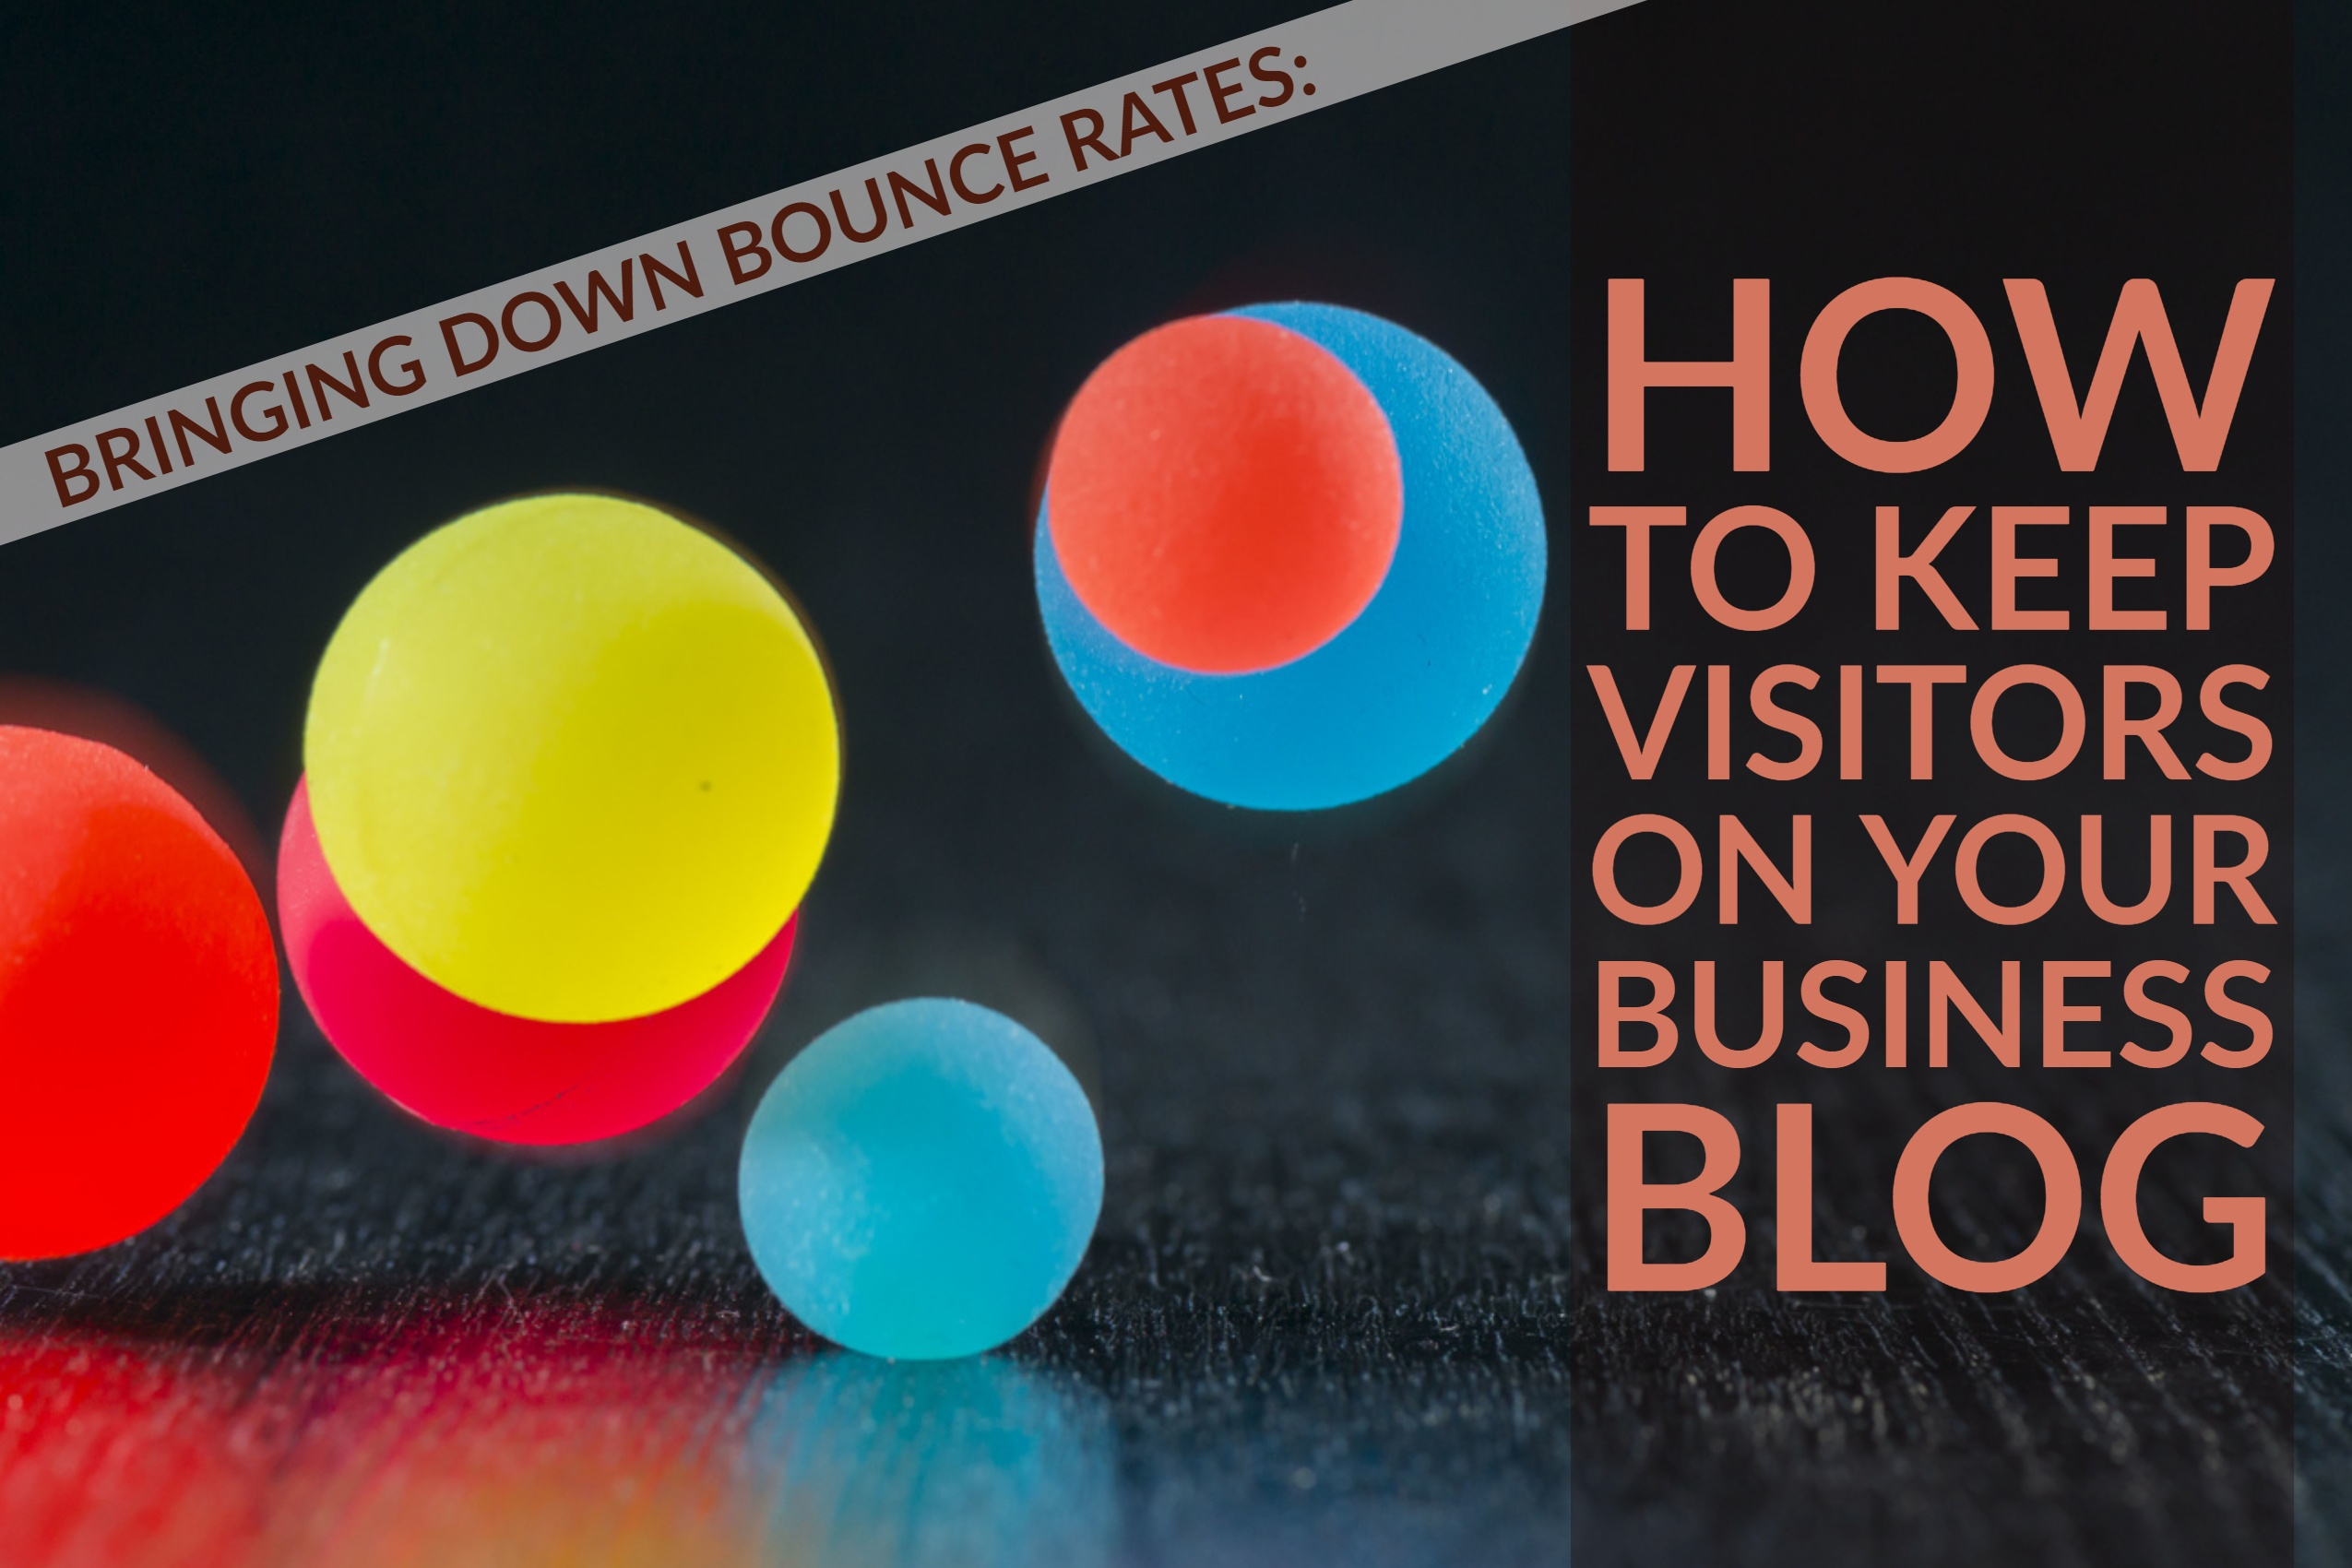 Bringing Down Bounce Rates_ How To Keep Visitors On Your Business Blog Copy